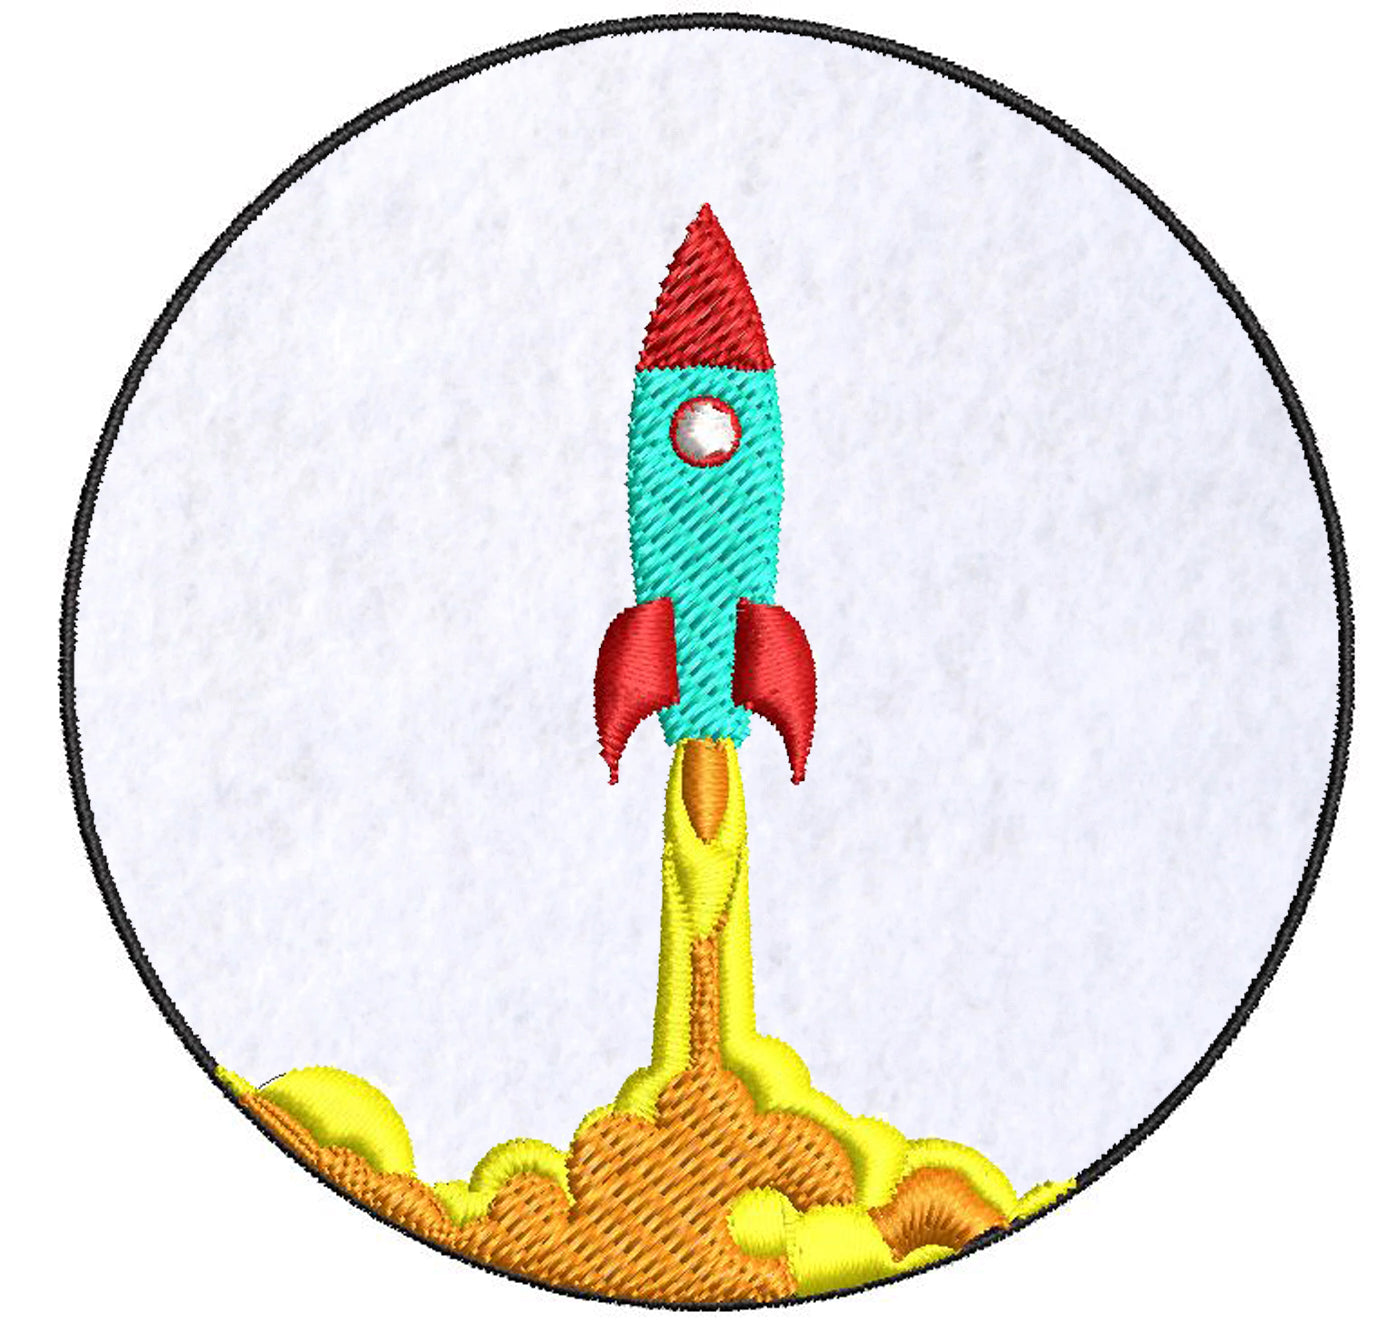 Iron on / Sew On Patch Applique Simple Rocket Space Ship Cartoon Icon Embroidered Design